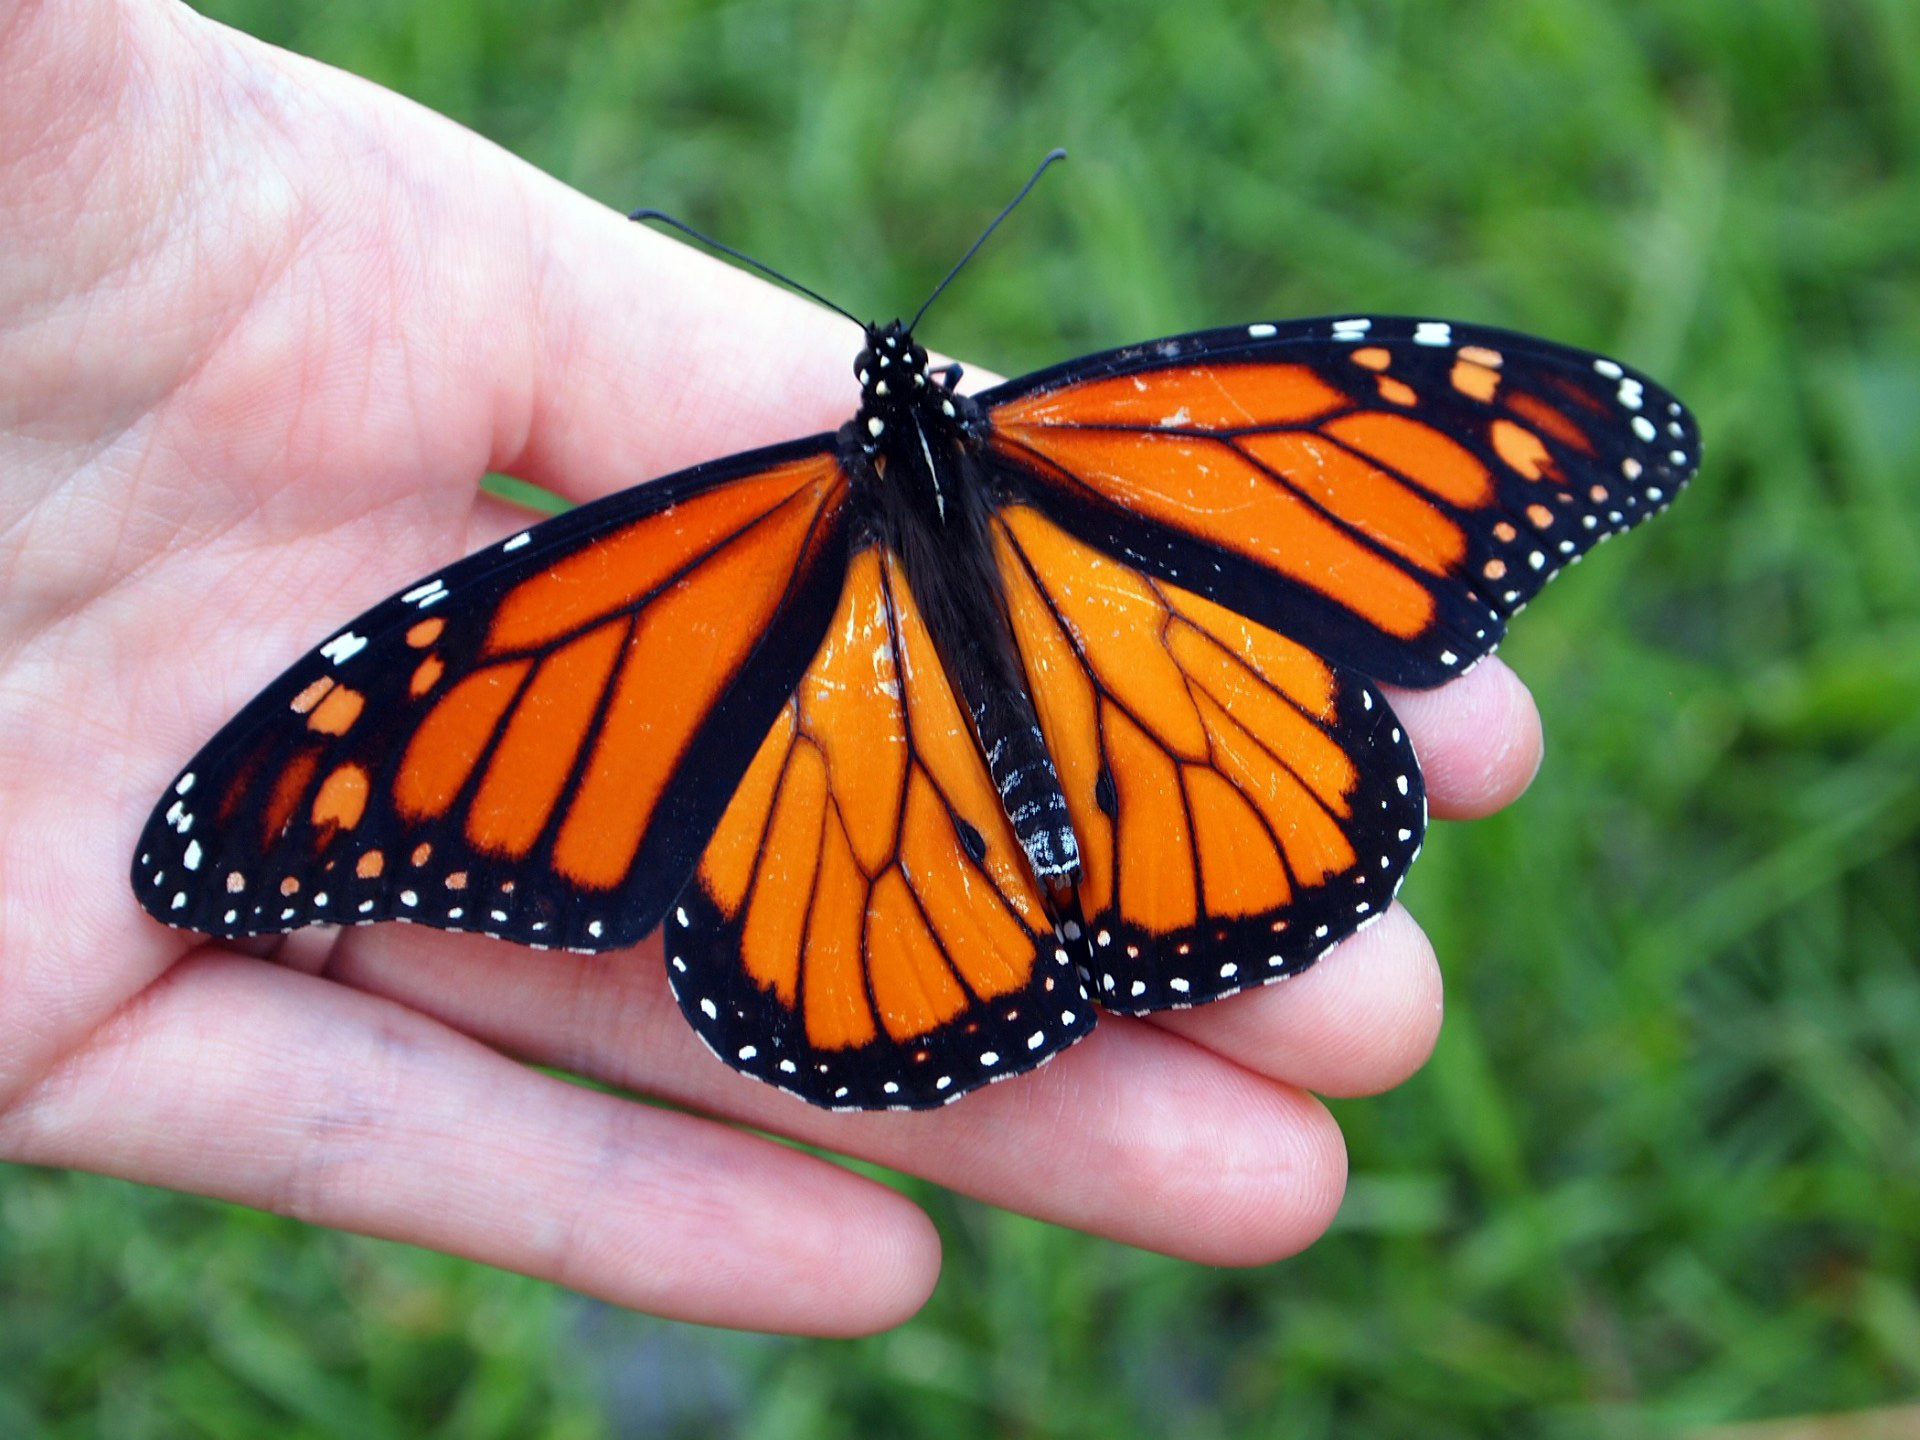 Photo of a monarch butterfly sitting on a person's hand